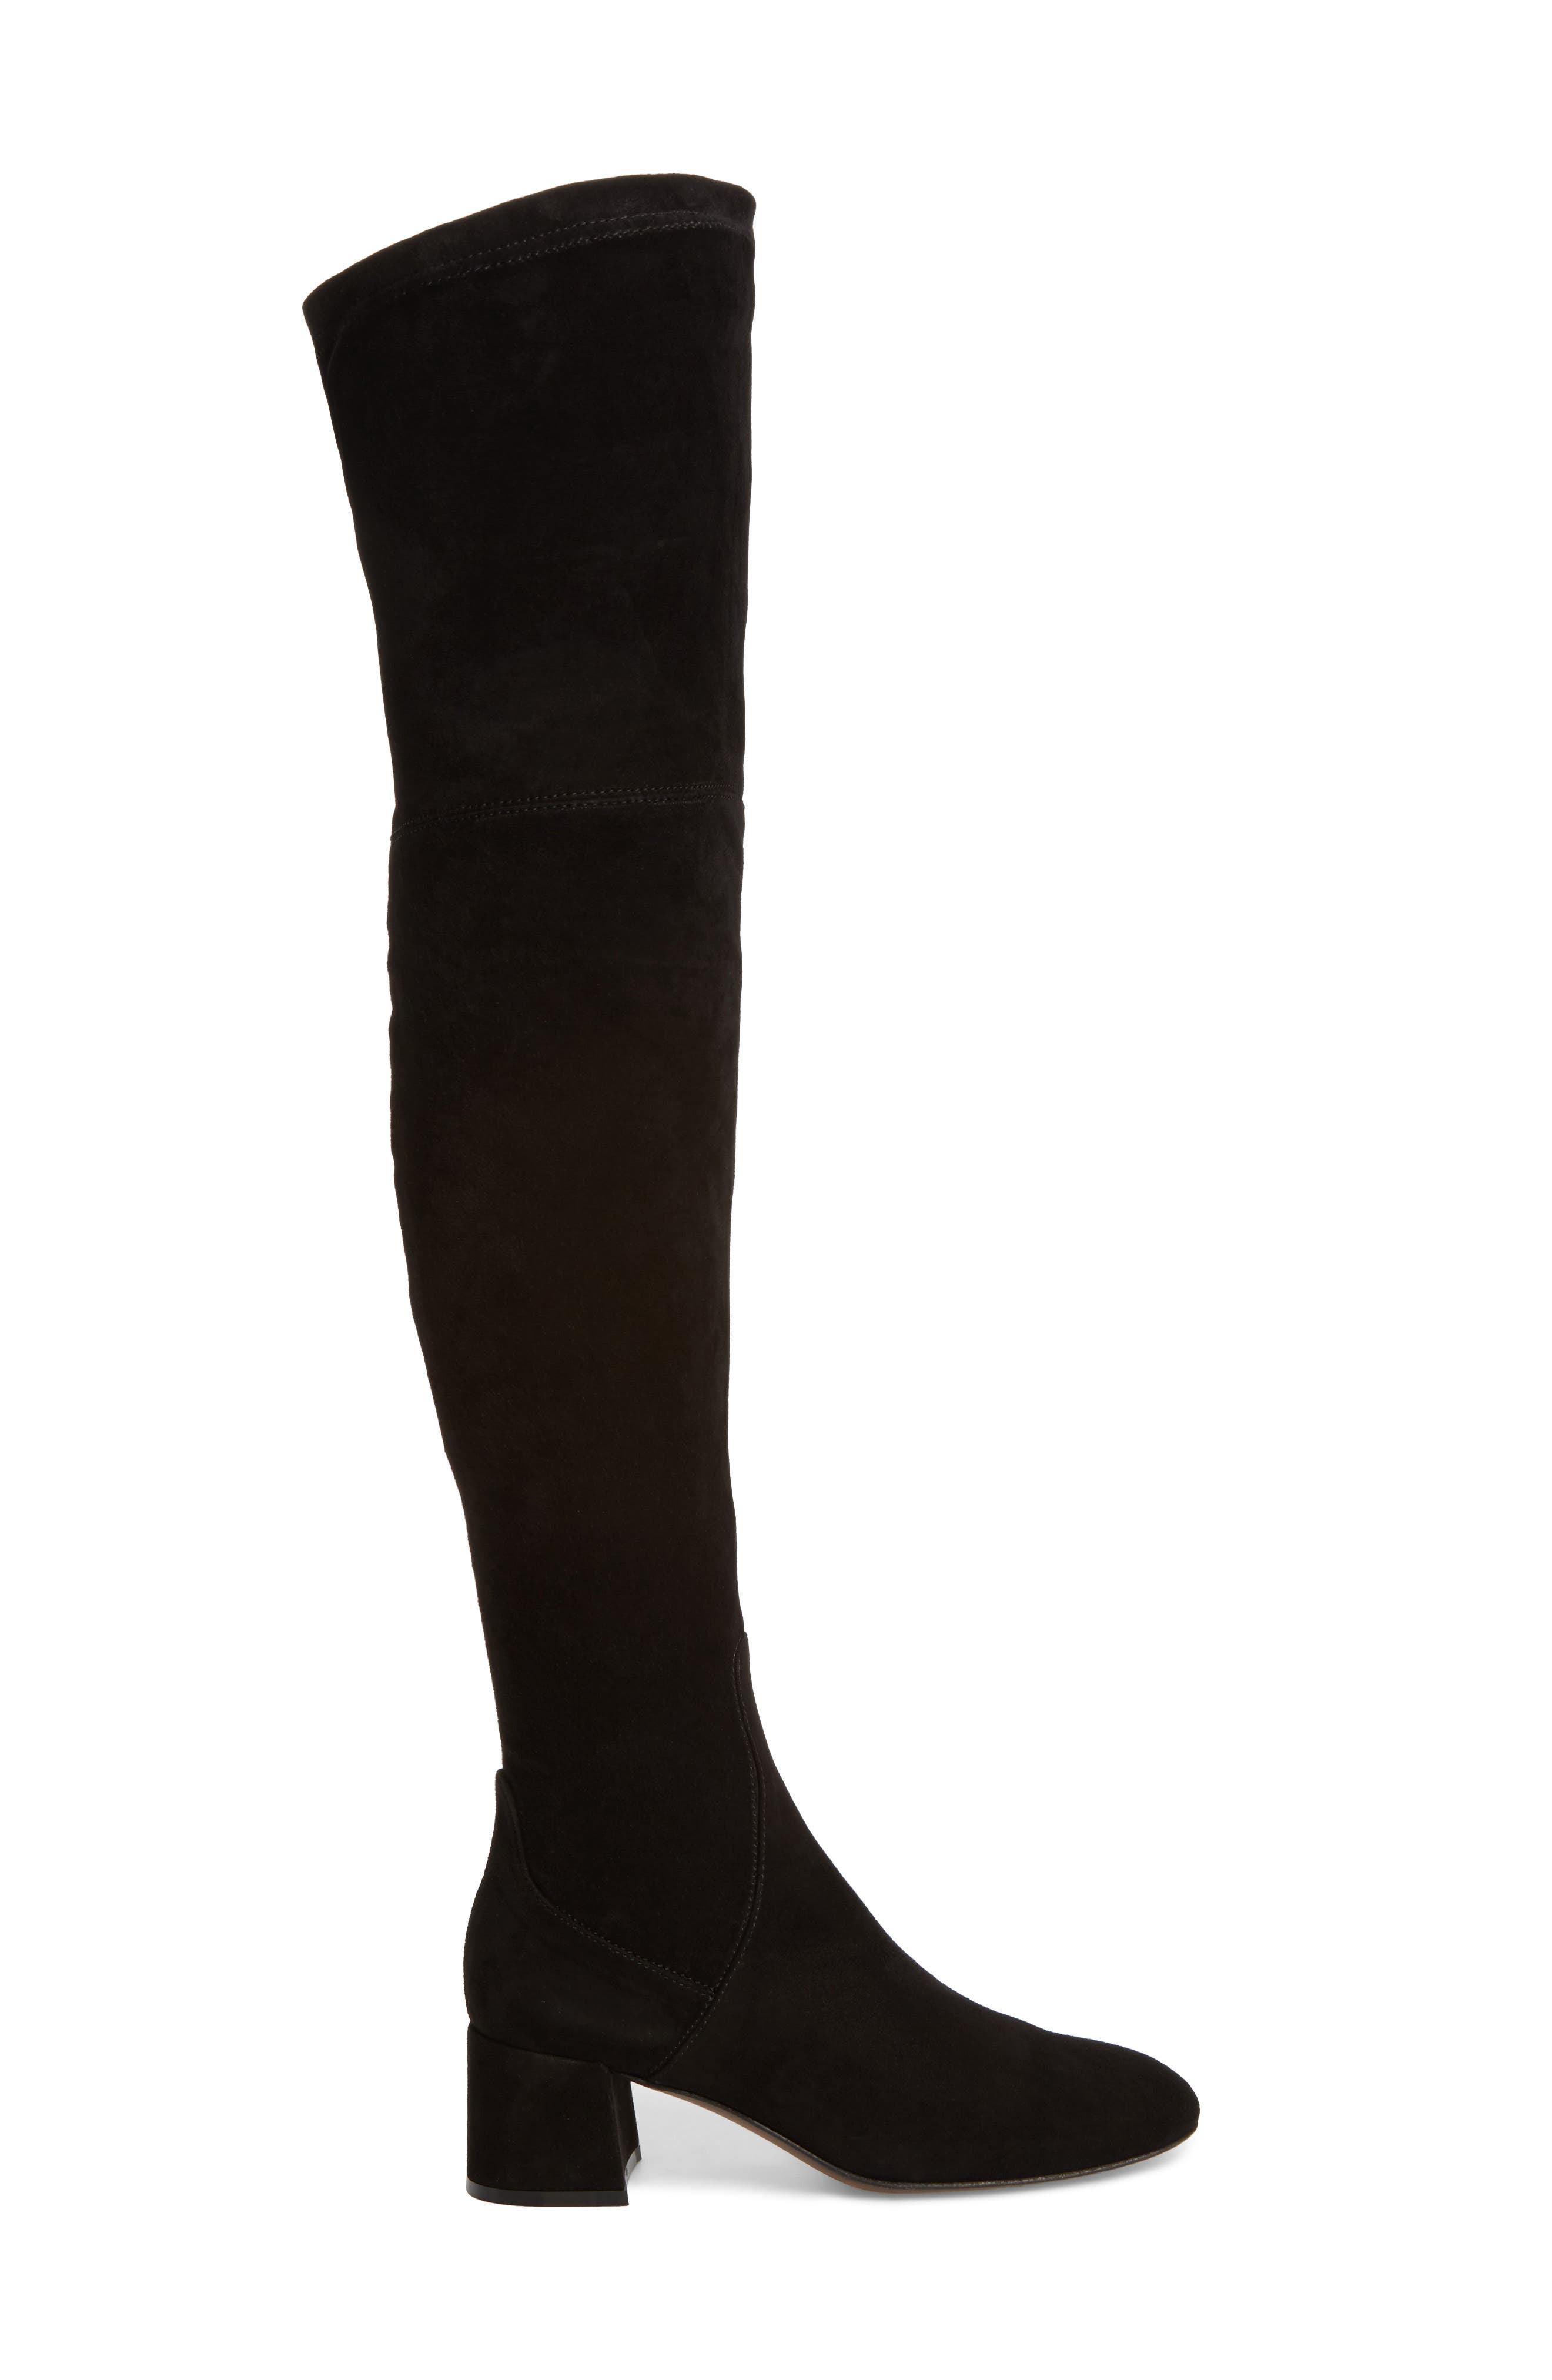 Over the Knee Boot,                             Alternate thumbnail 3, color,                             Black Suede